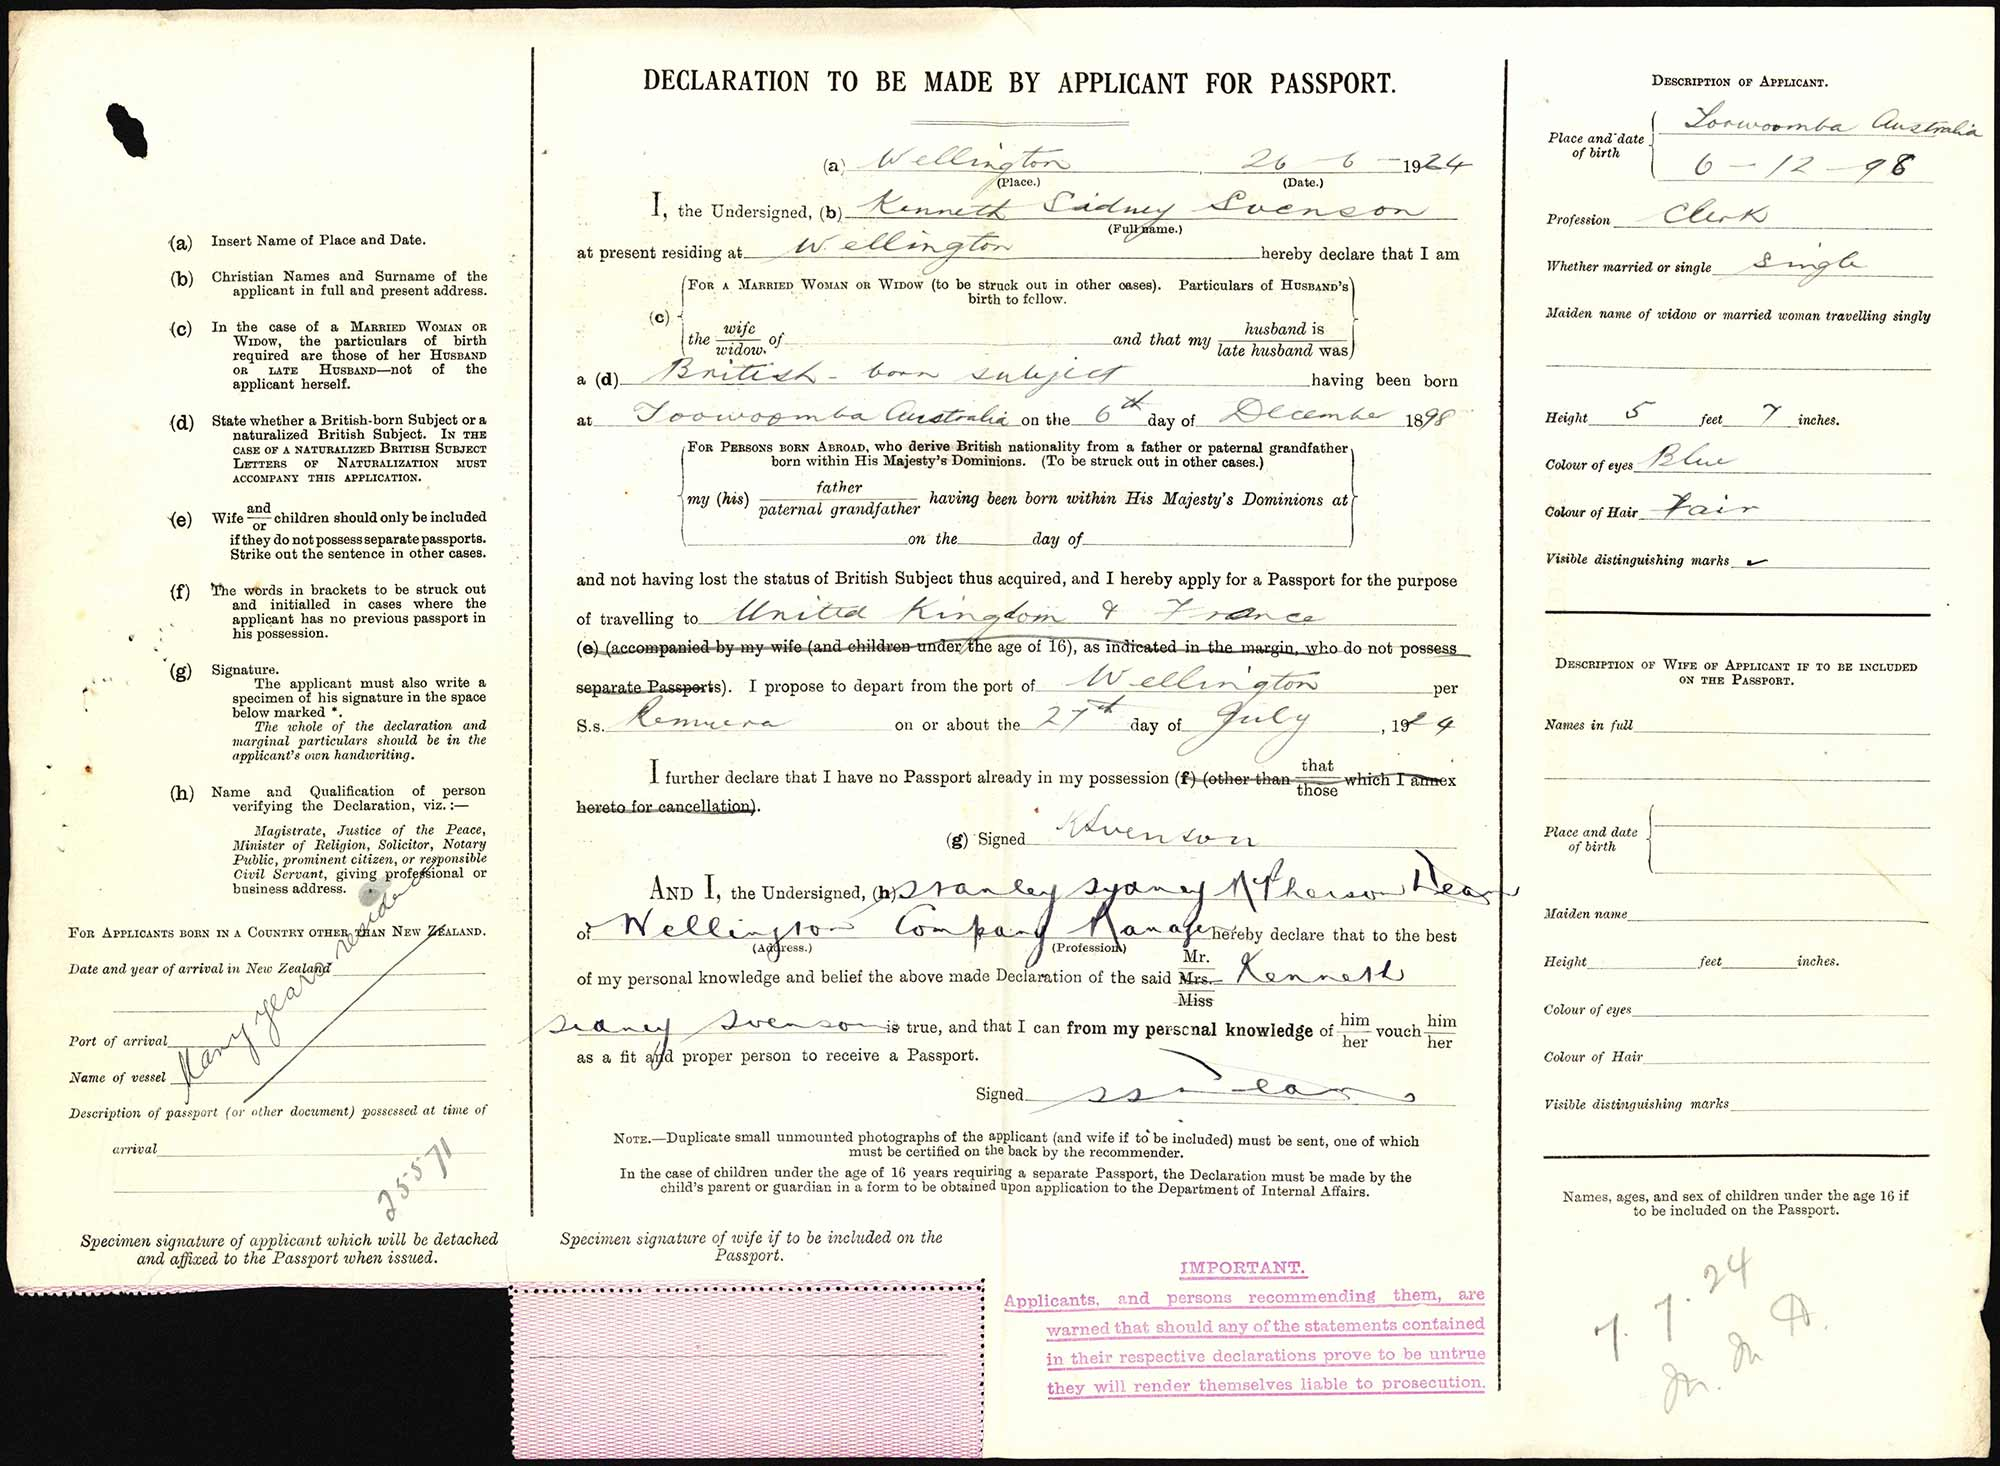 Kenneth Sidney Svenson passport application